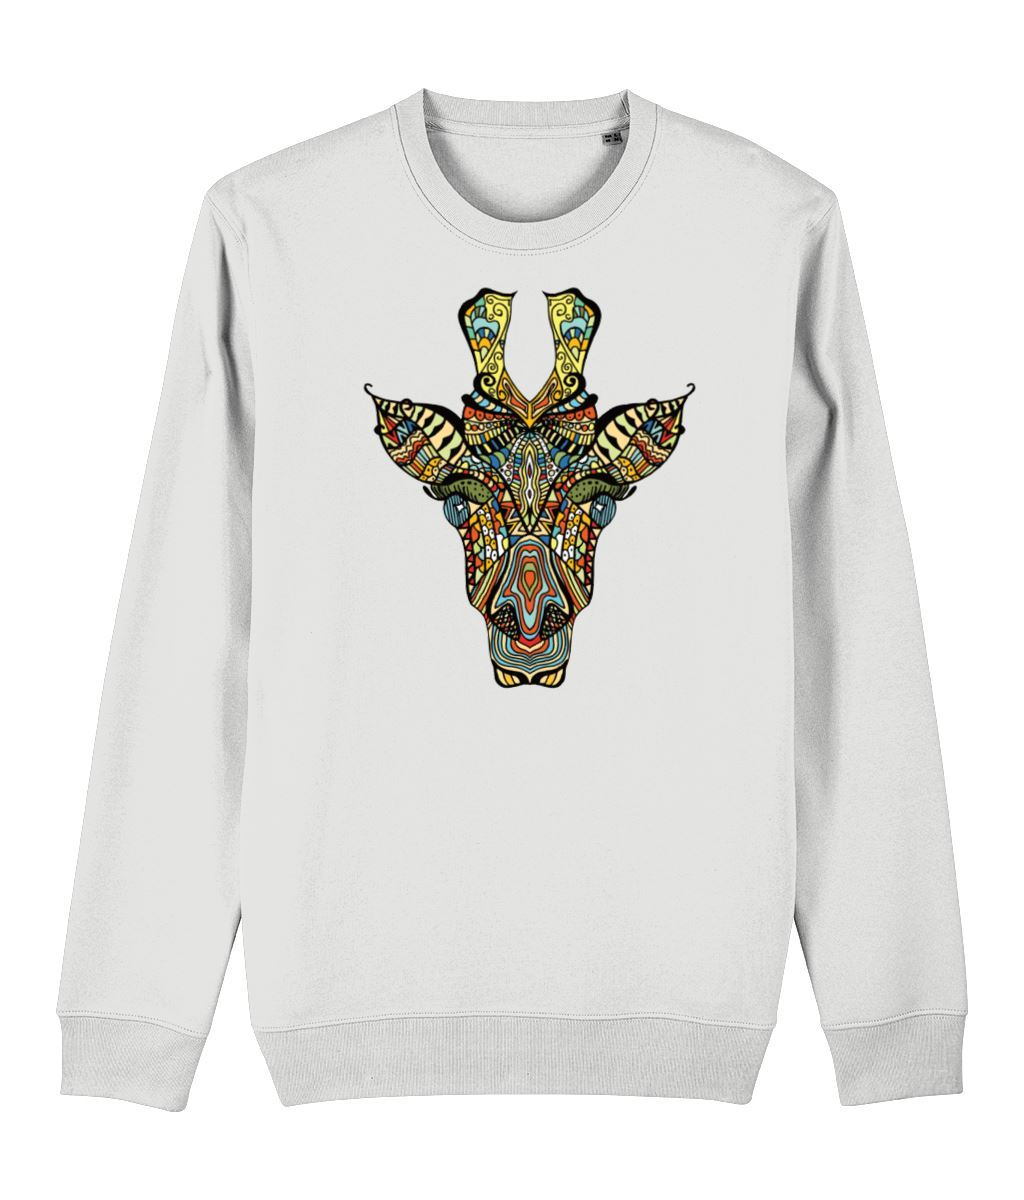 Ethnic Giraffe Sweatshirt Clothing IndianBelieves White X-Small